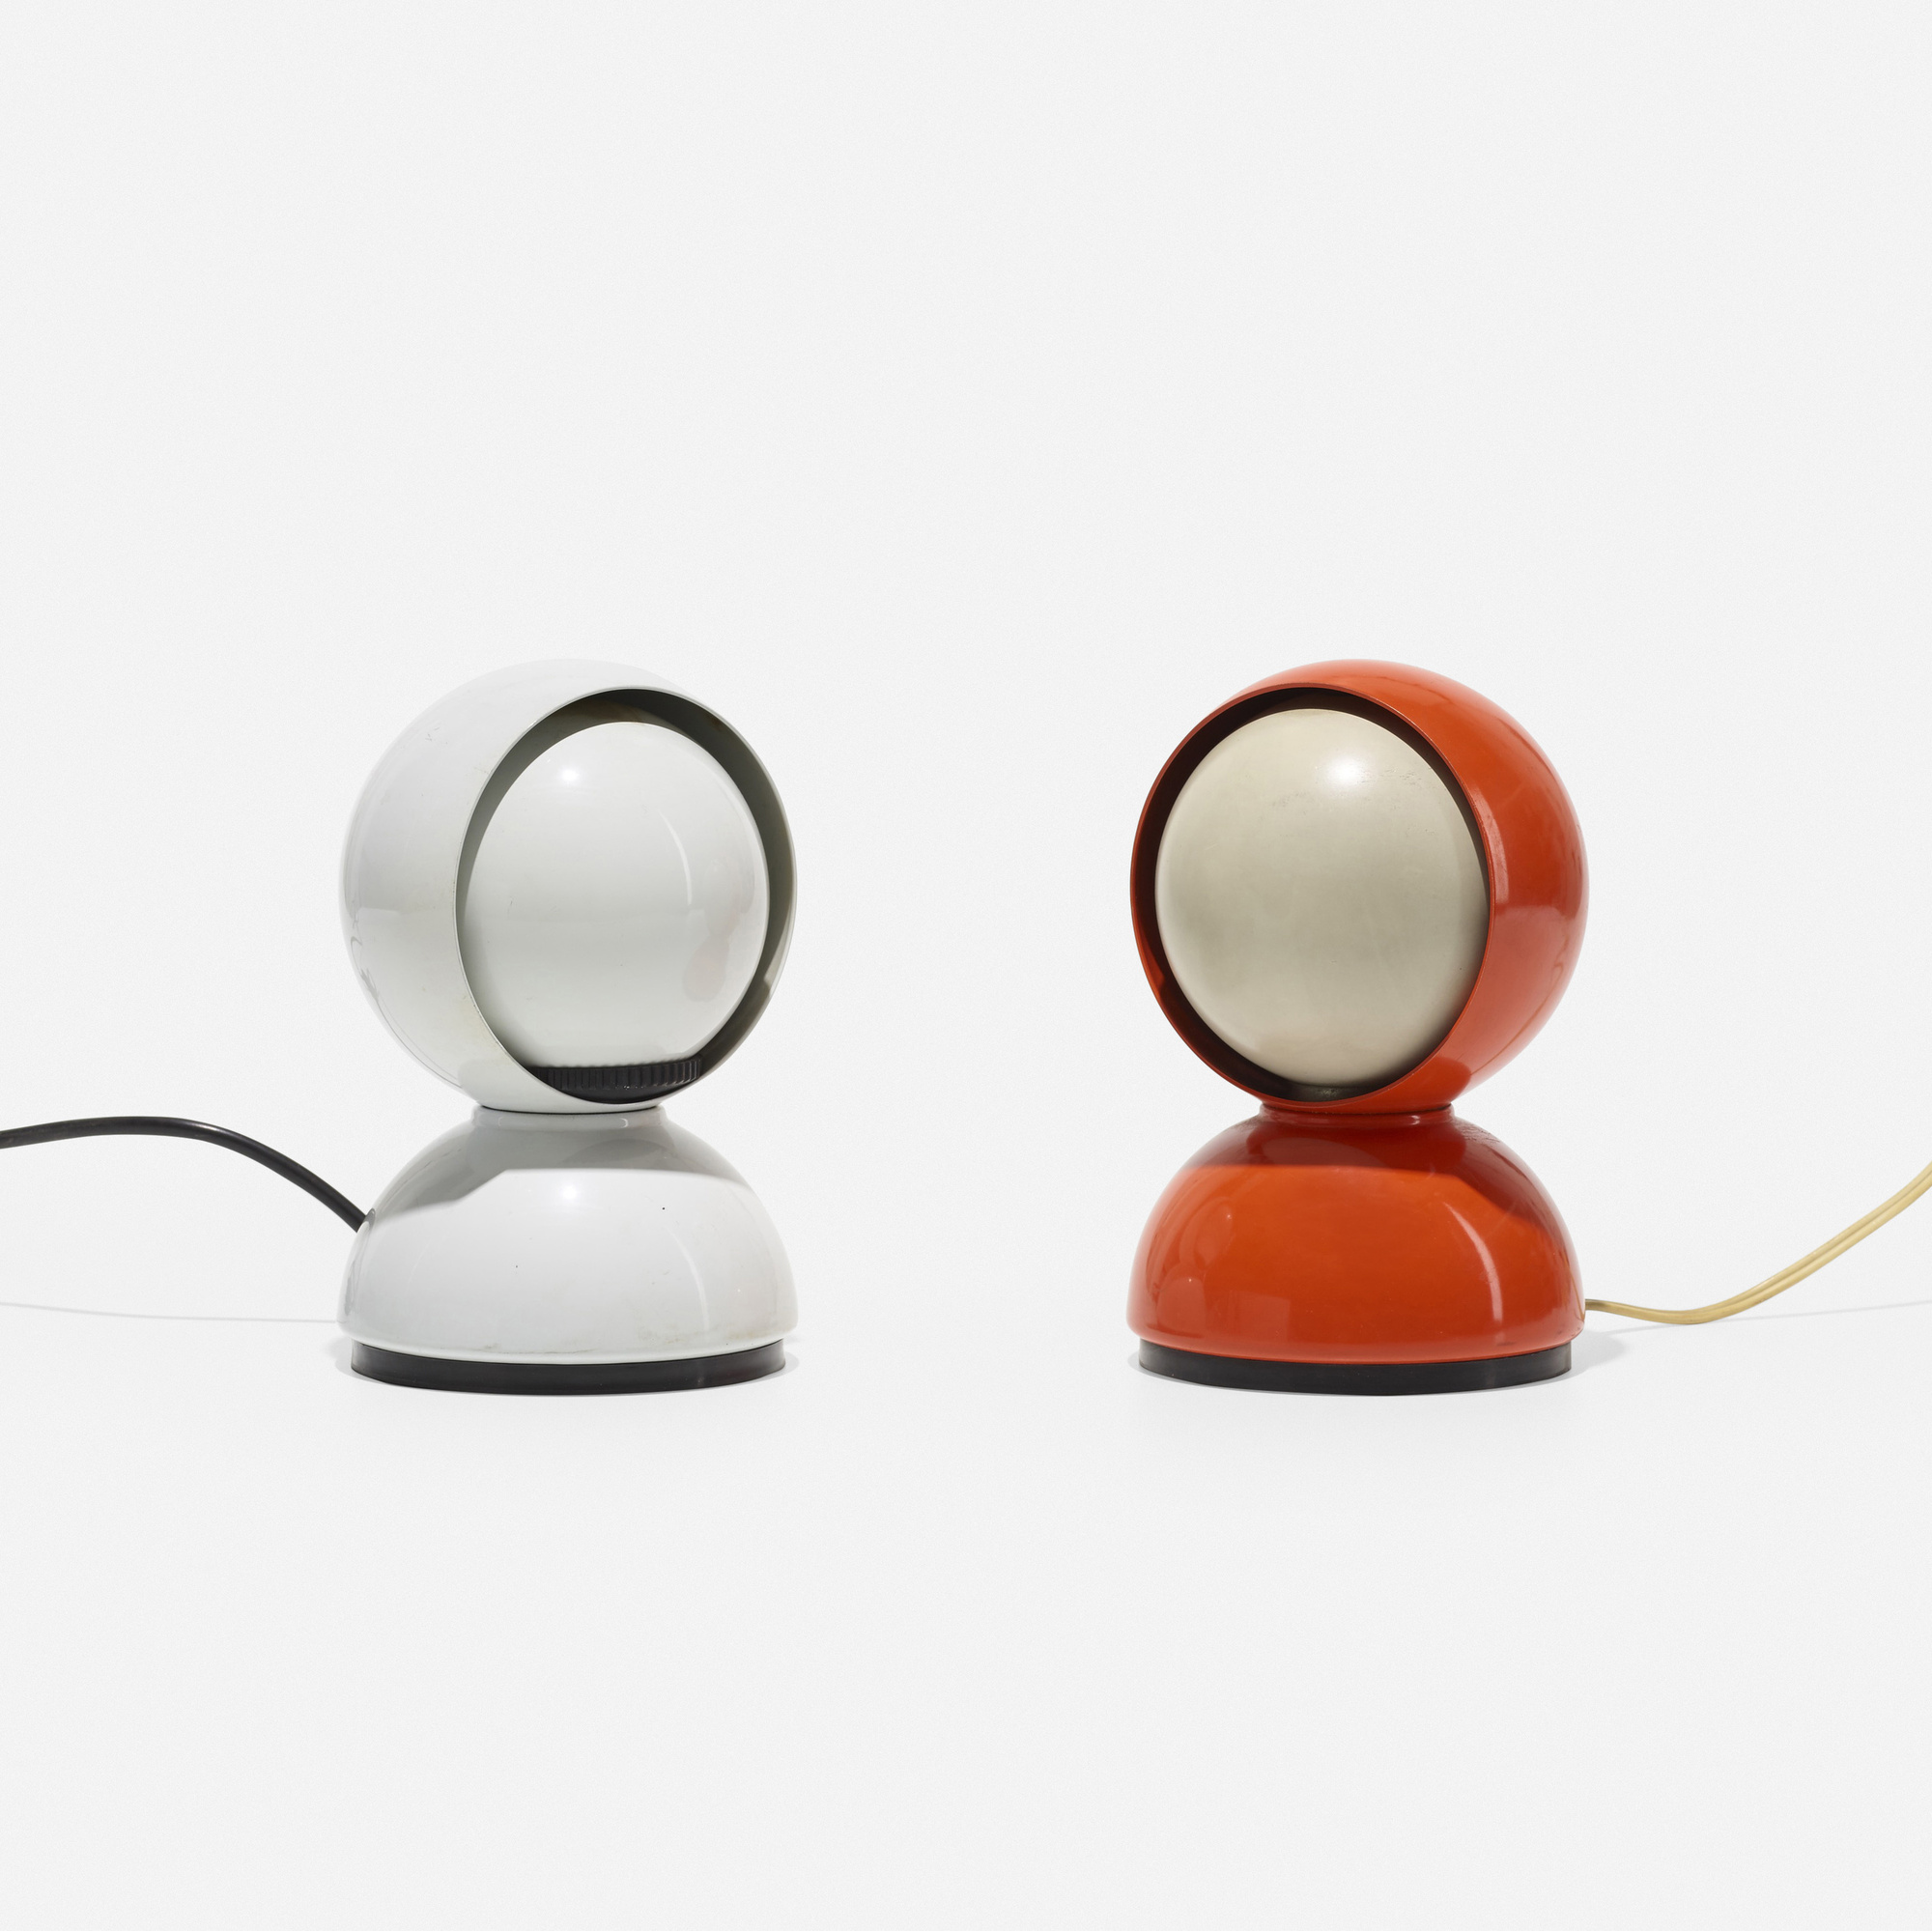 323 vico magistretti eclisse table lamps pair taxonomy of 323 vico magistretti eclisse table lamps pair 2 of 3 aloadofball Choice Image